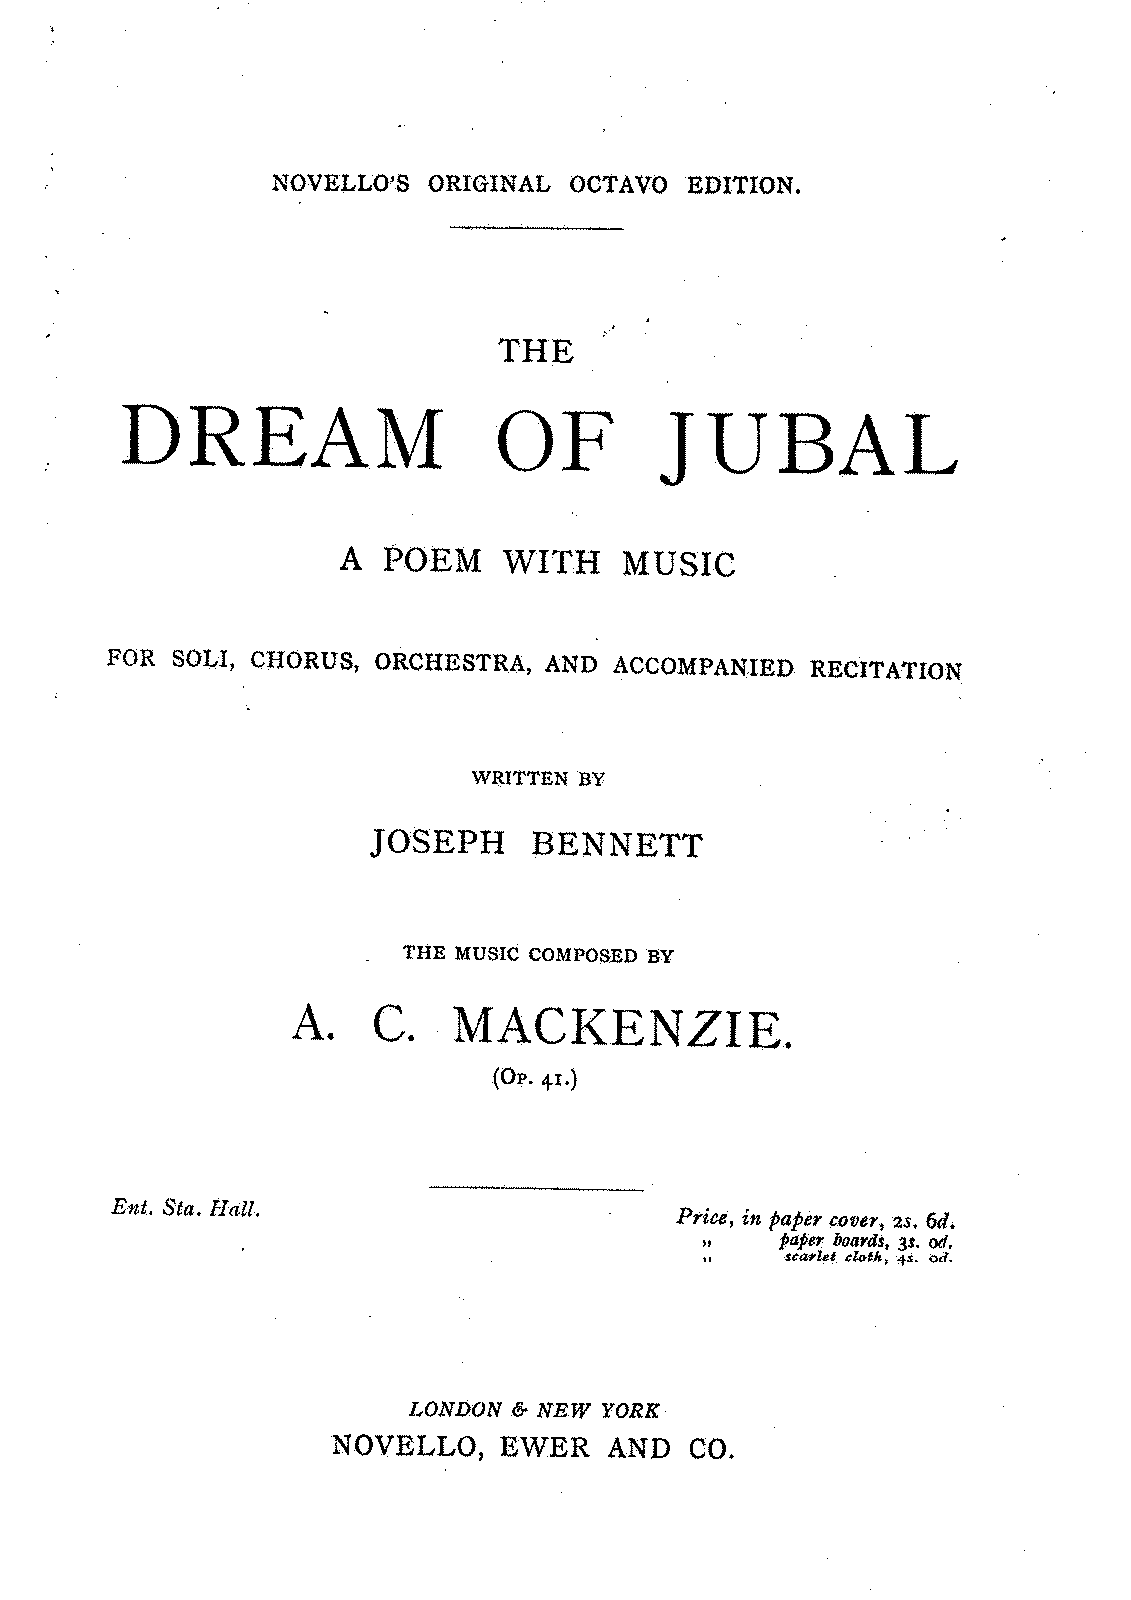 PMLP313241-Mackenzie - The Dream of Jubal, Title and prelims.pdf